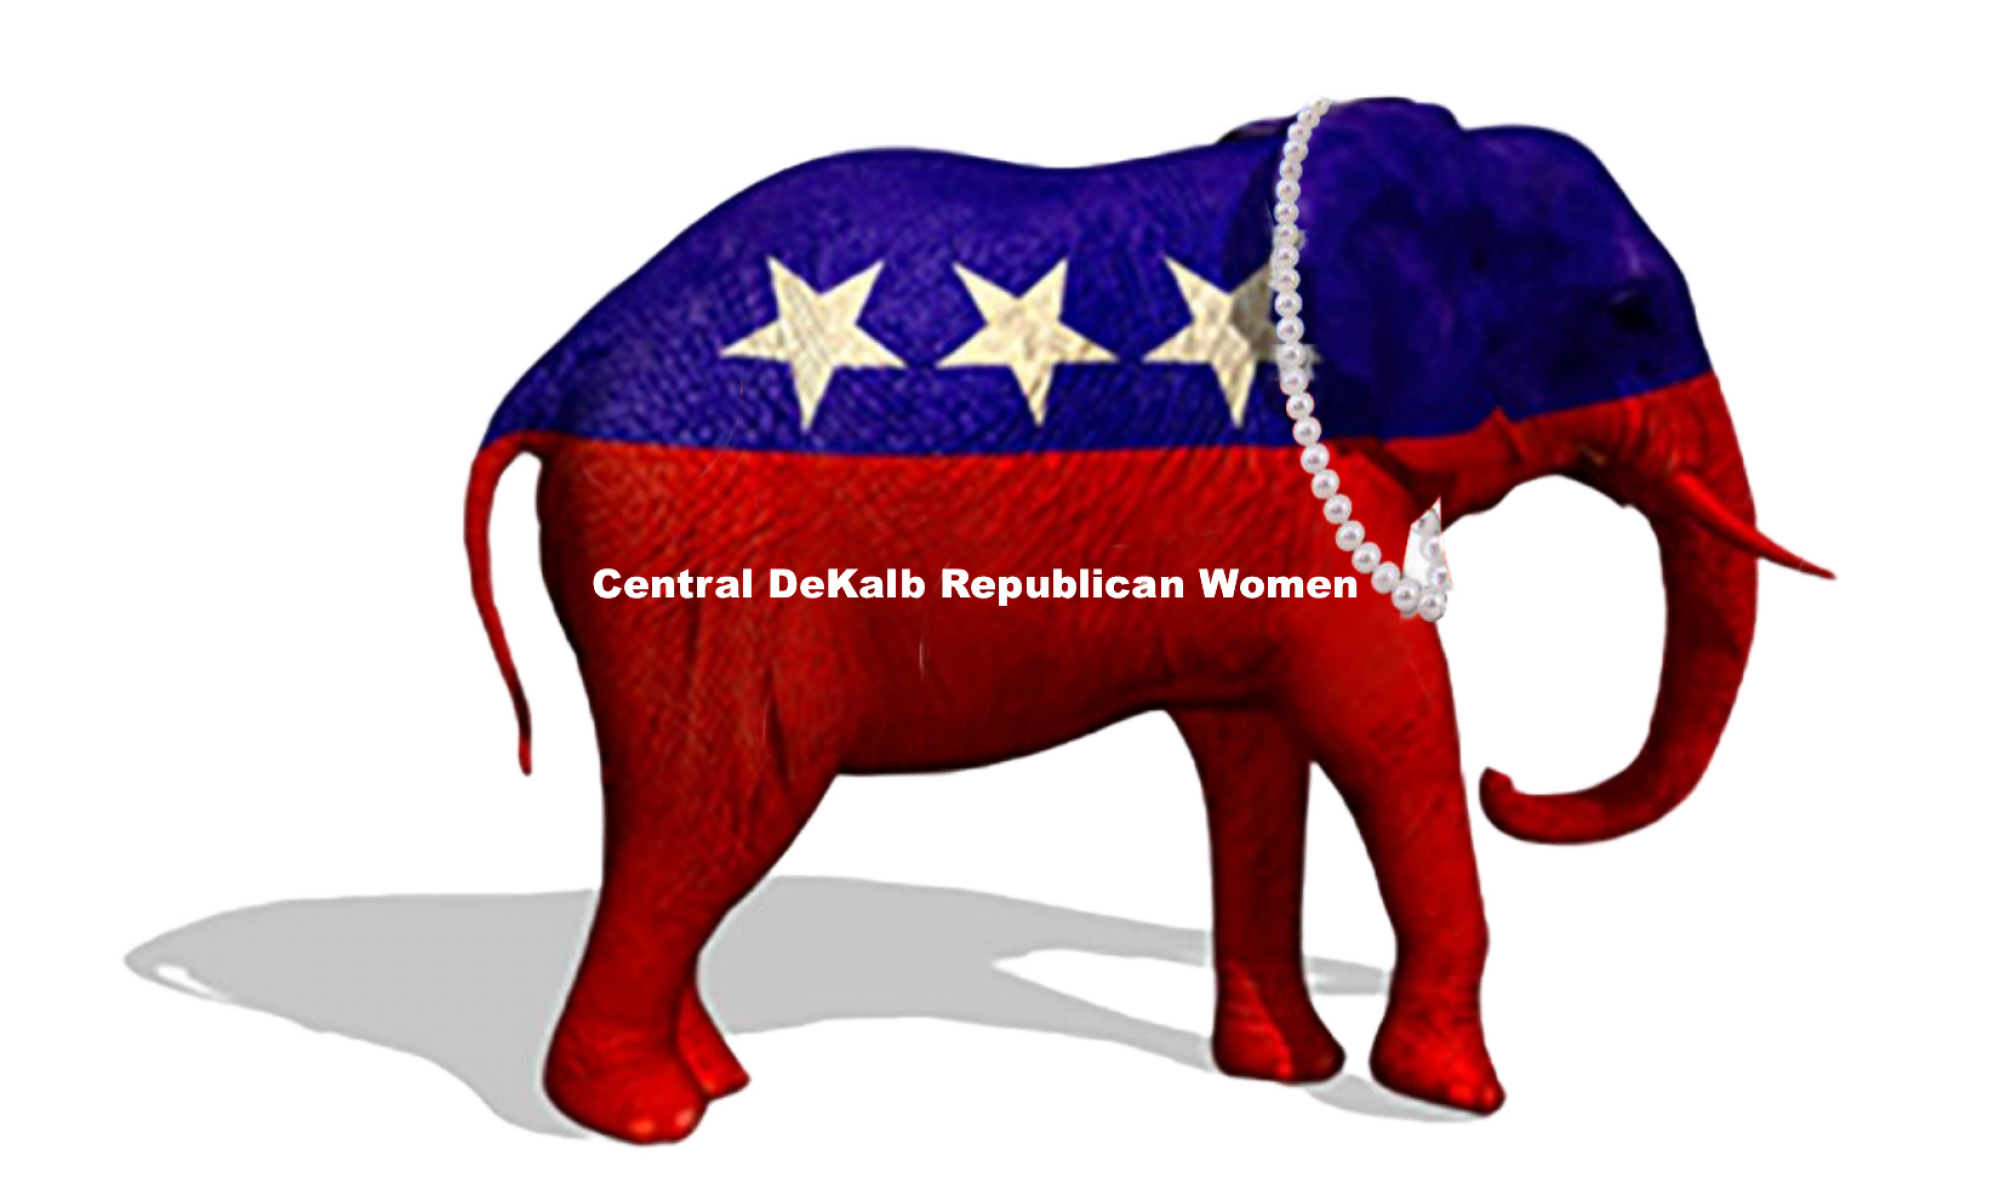 CENTRAL DEKALB REPUBLICAN WOMEN